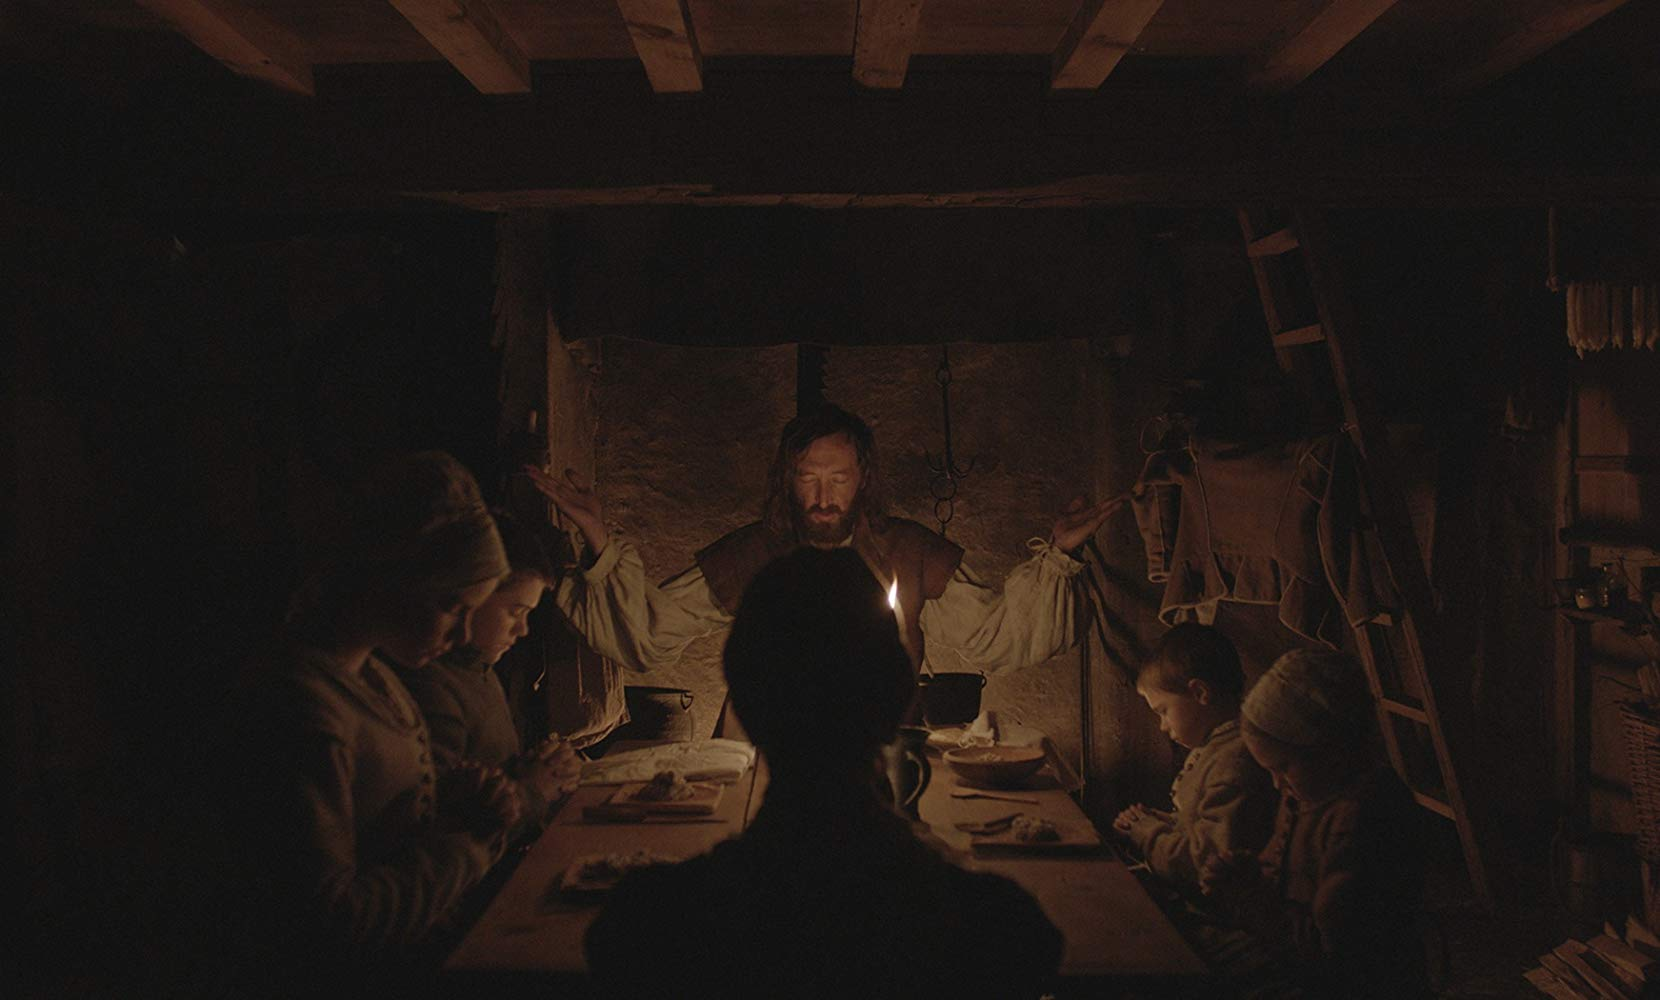 The Witch scariest film of the decade